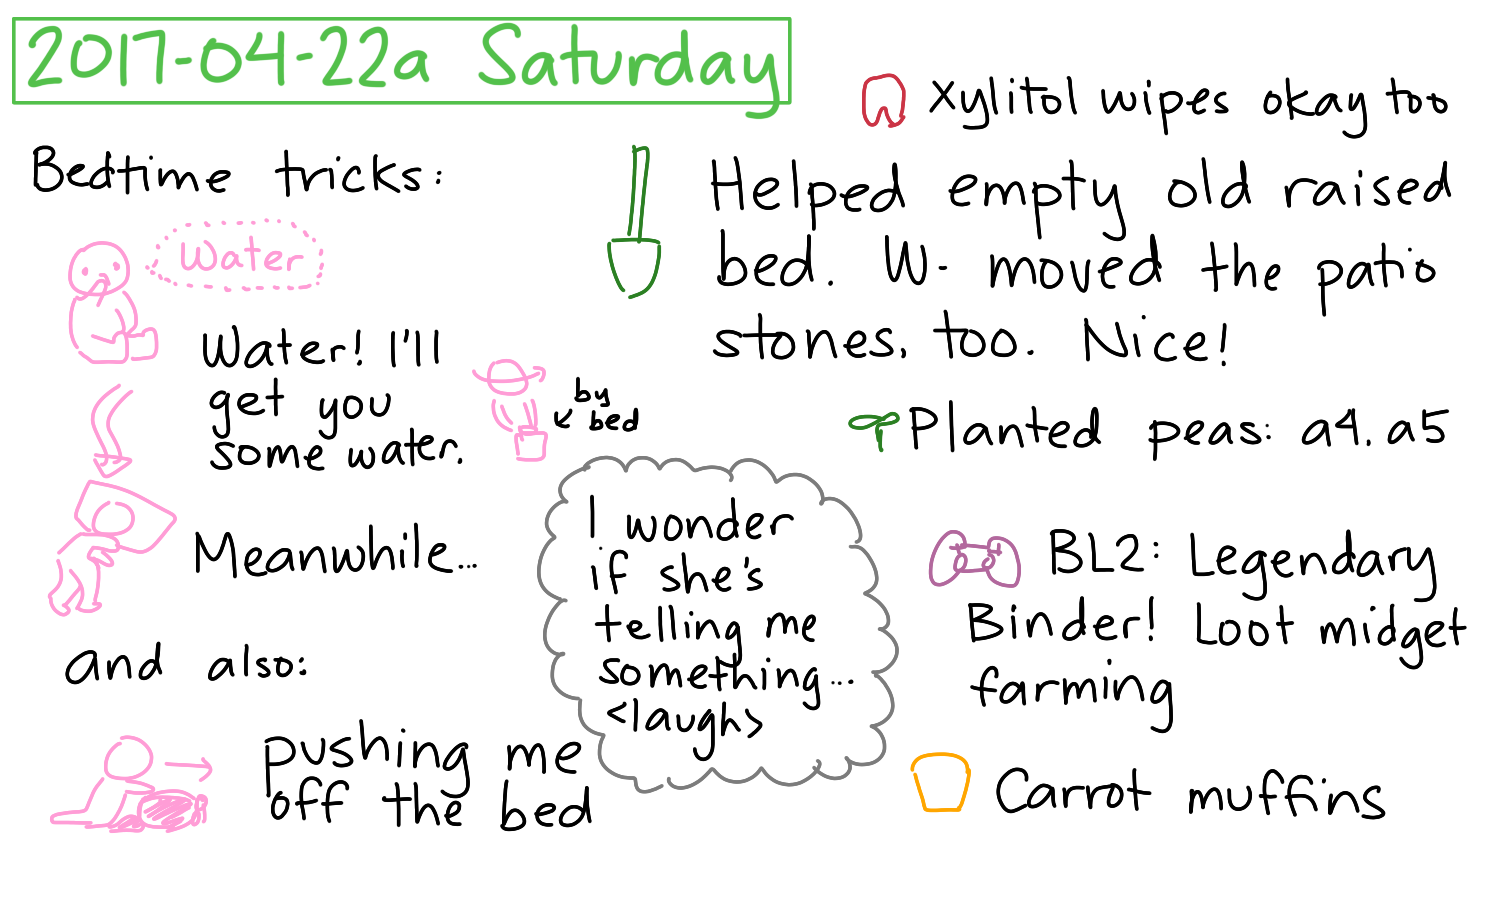 2017-04-22a Saturday #daily #journal.png